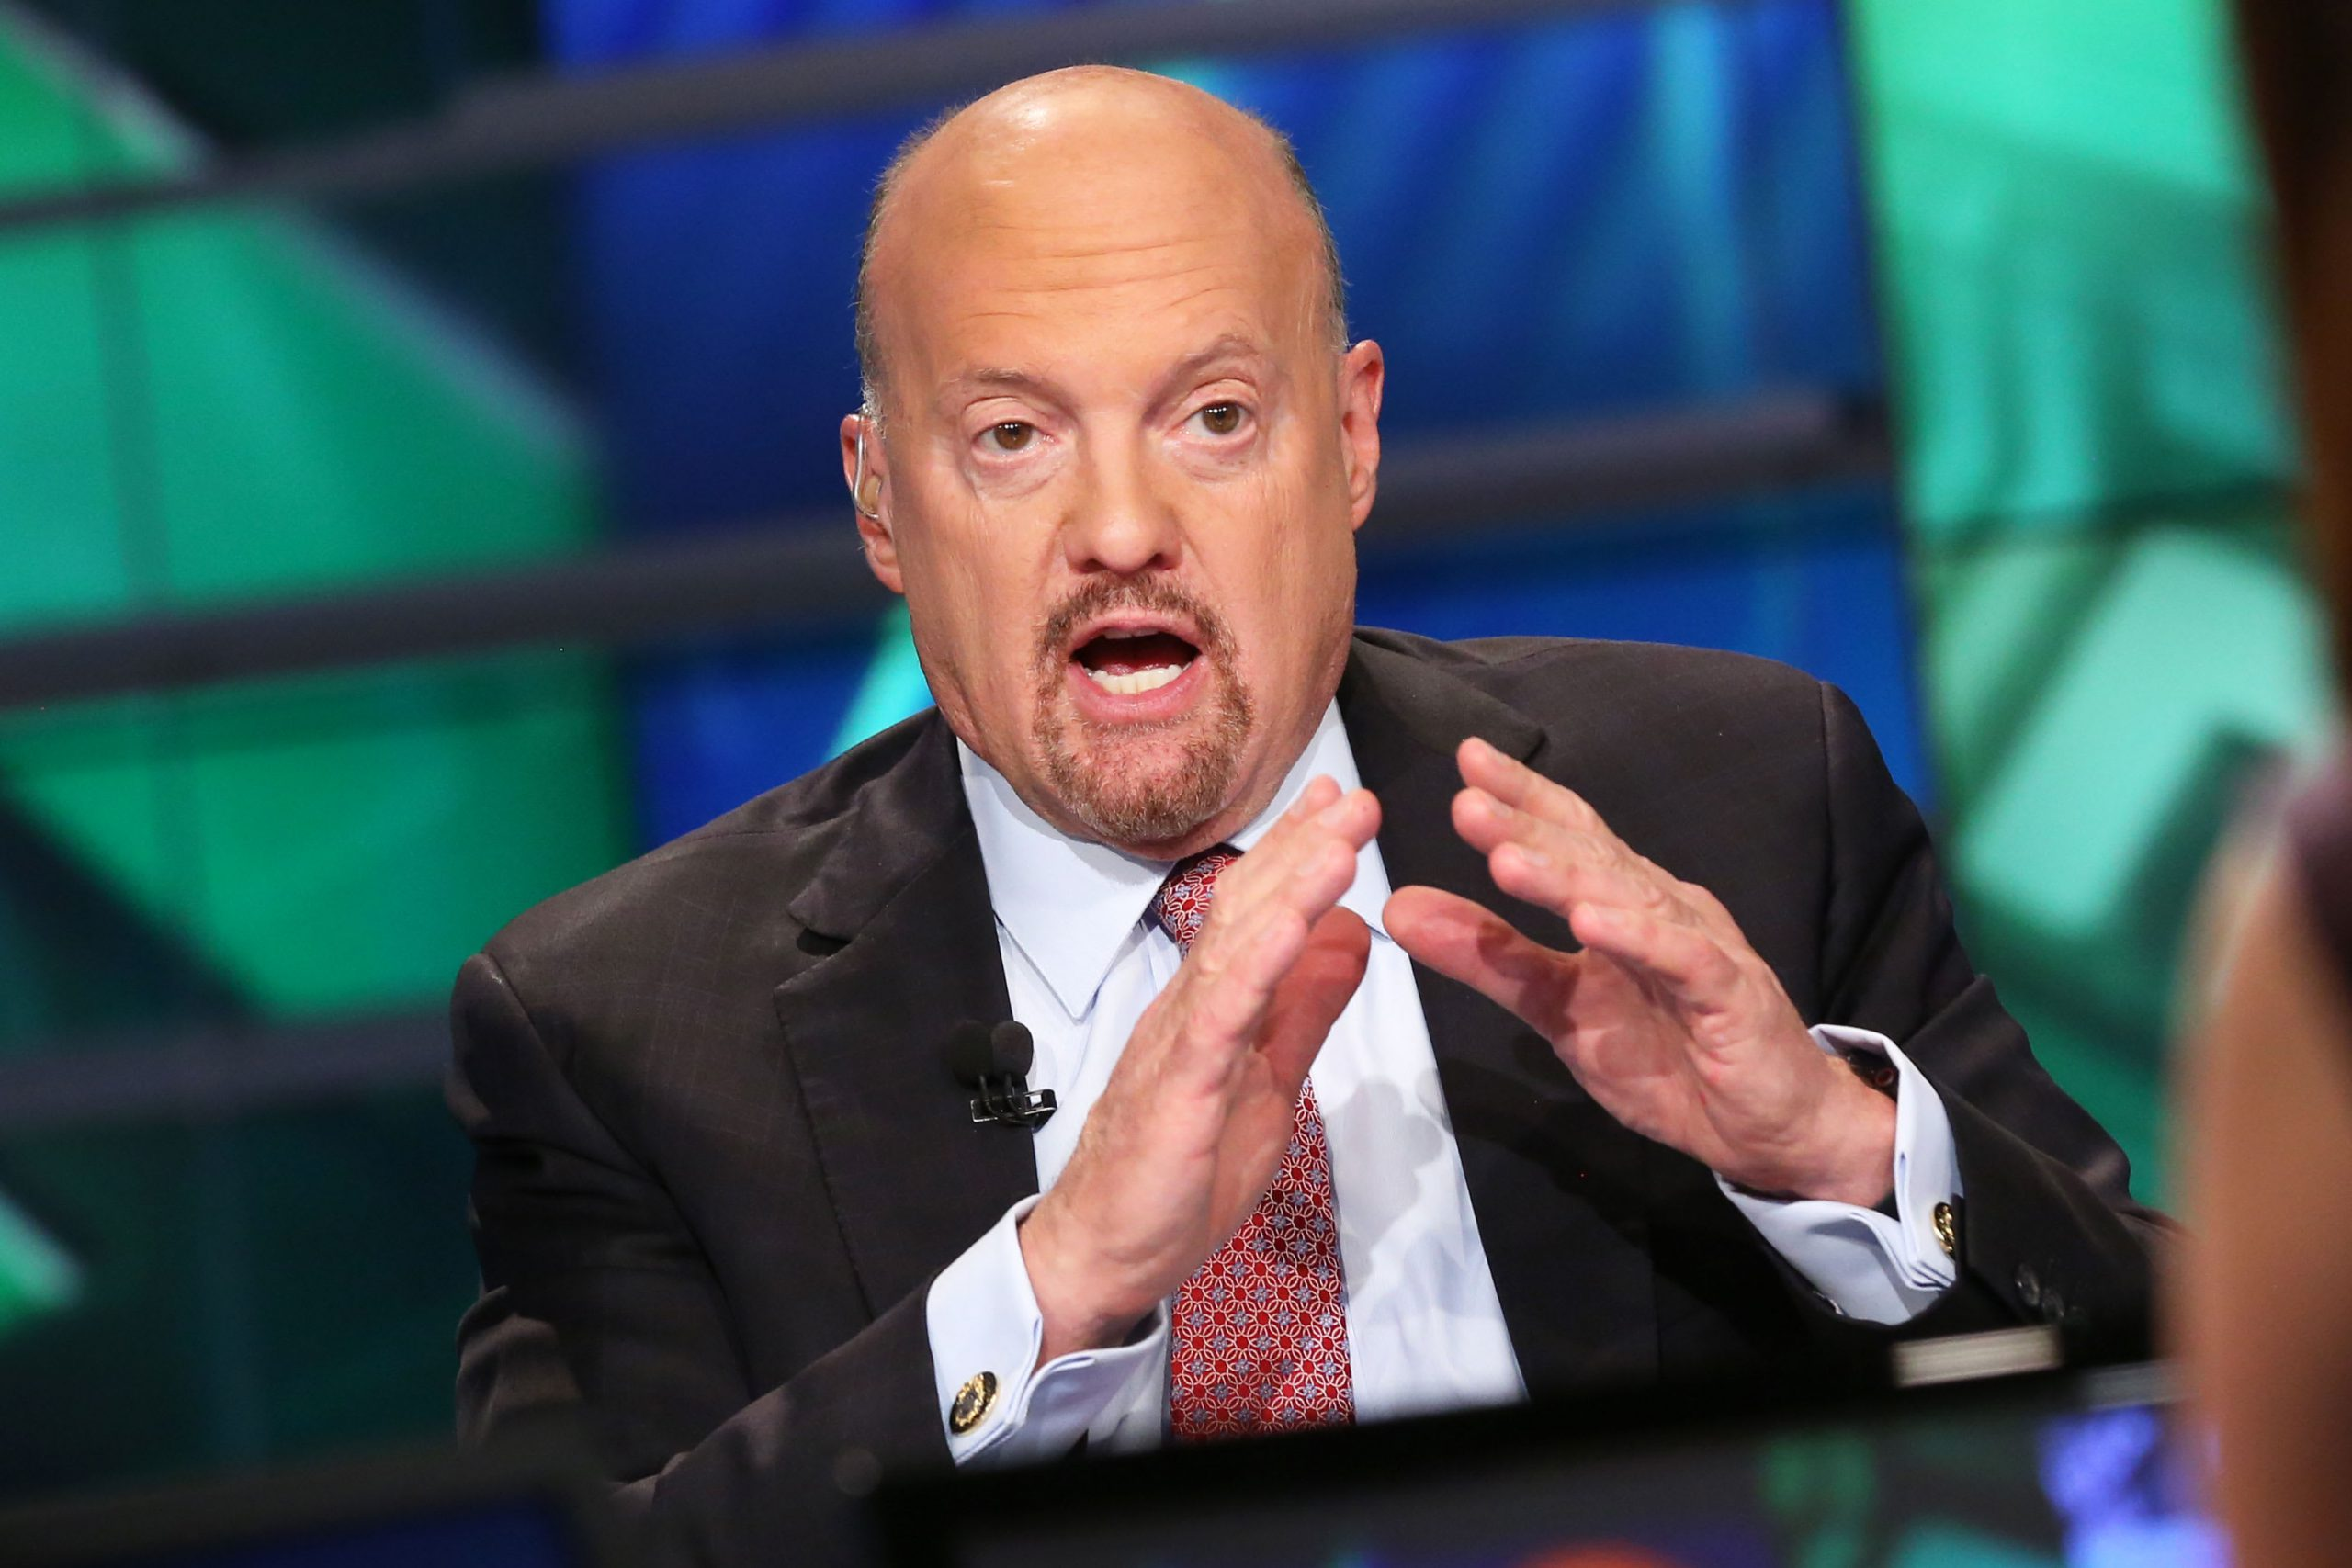 Cramer: Wall Street's 'happy days are here again' story is not what I'm hearing on Main Street